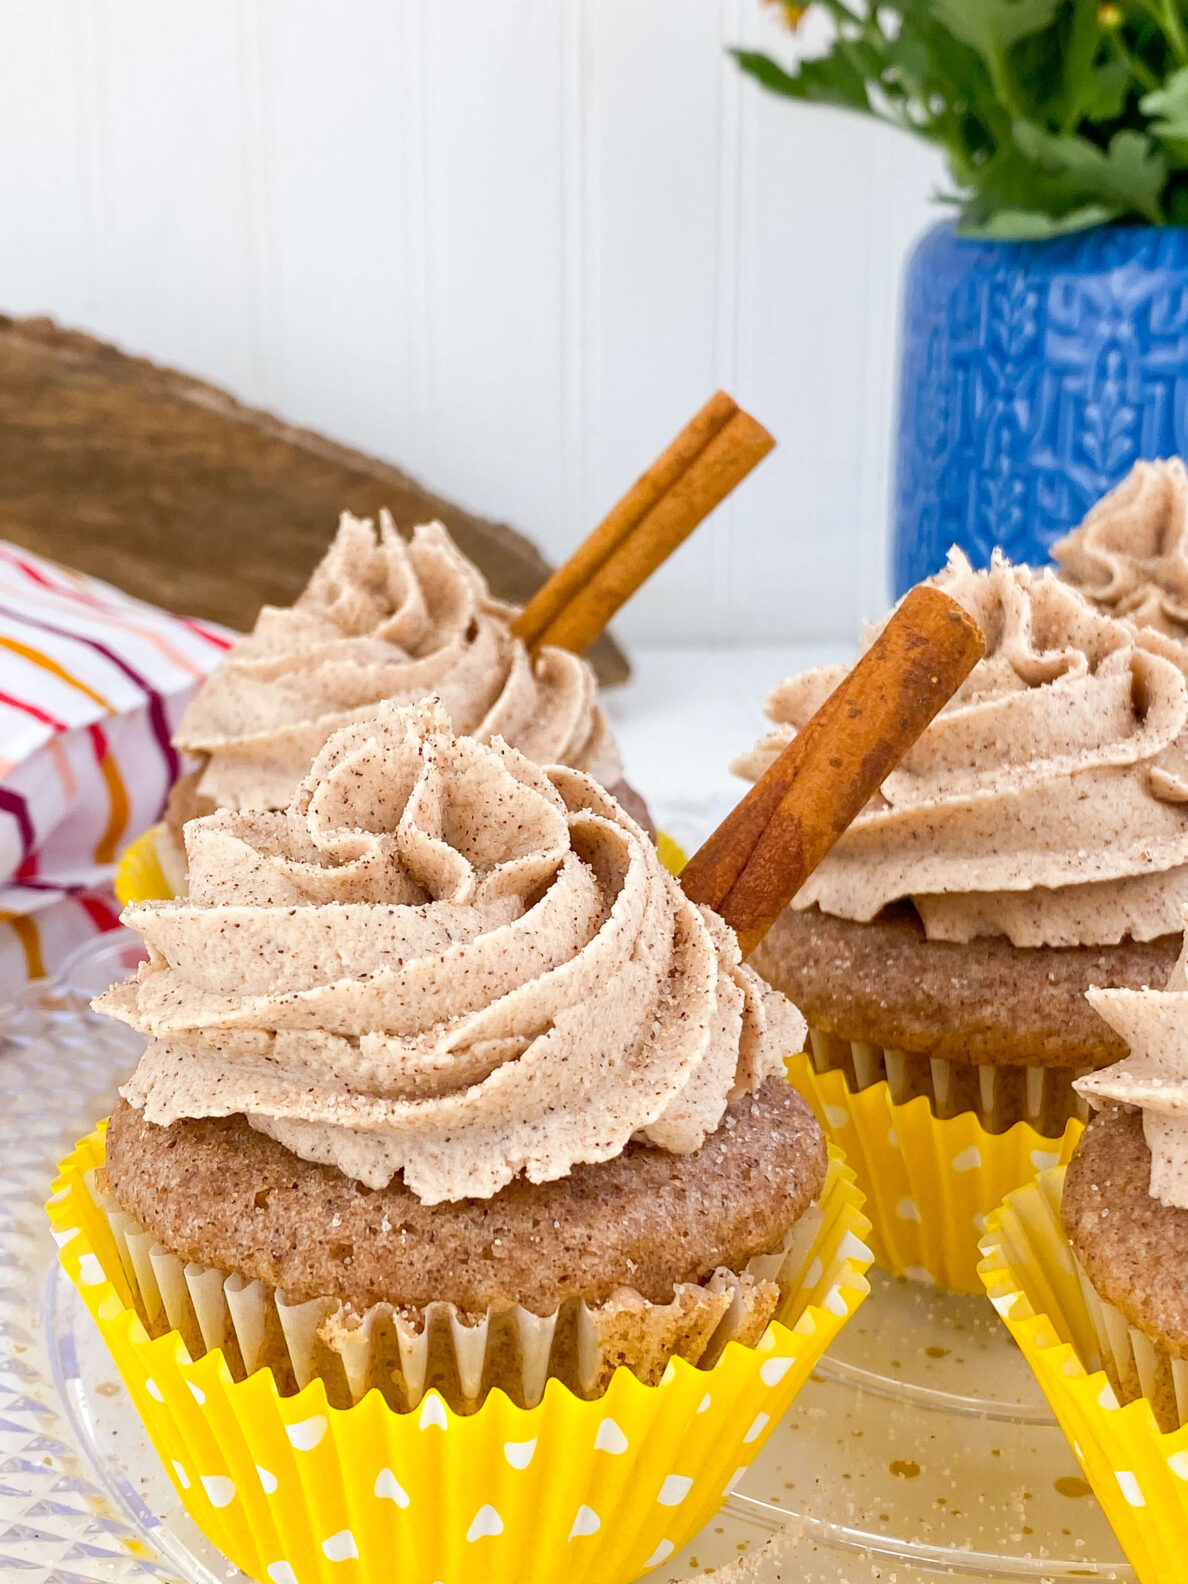 Kate's Safe & Sweet - Snickerdoodle Cupcake with Cinnamon Stick